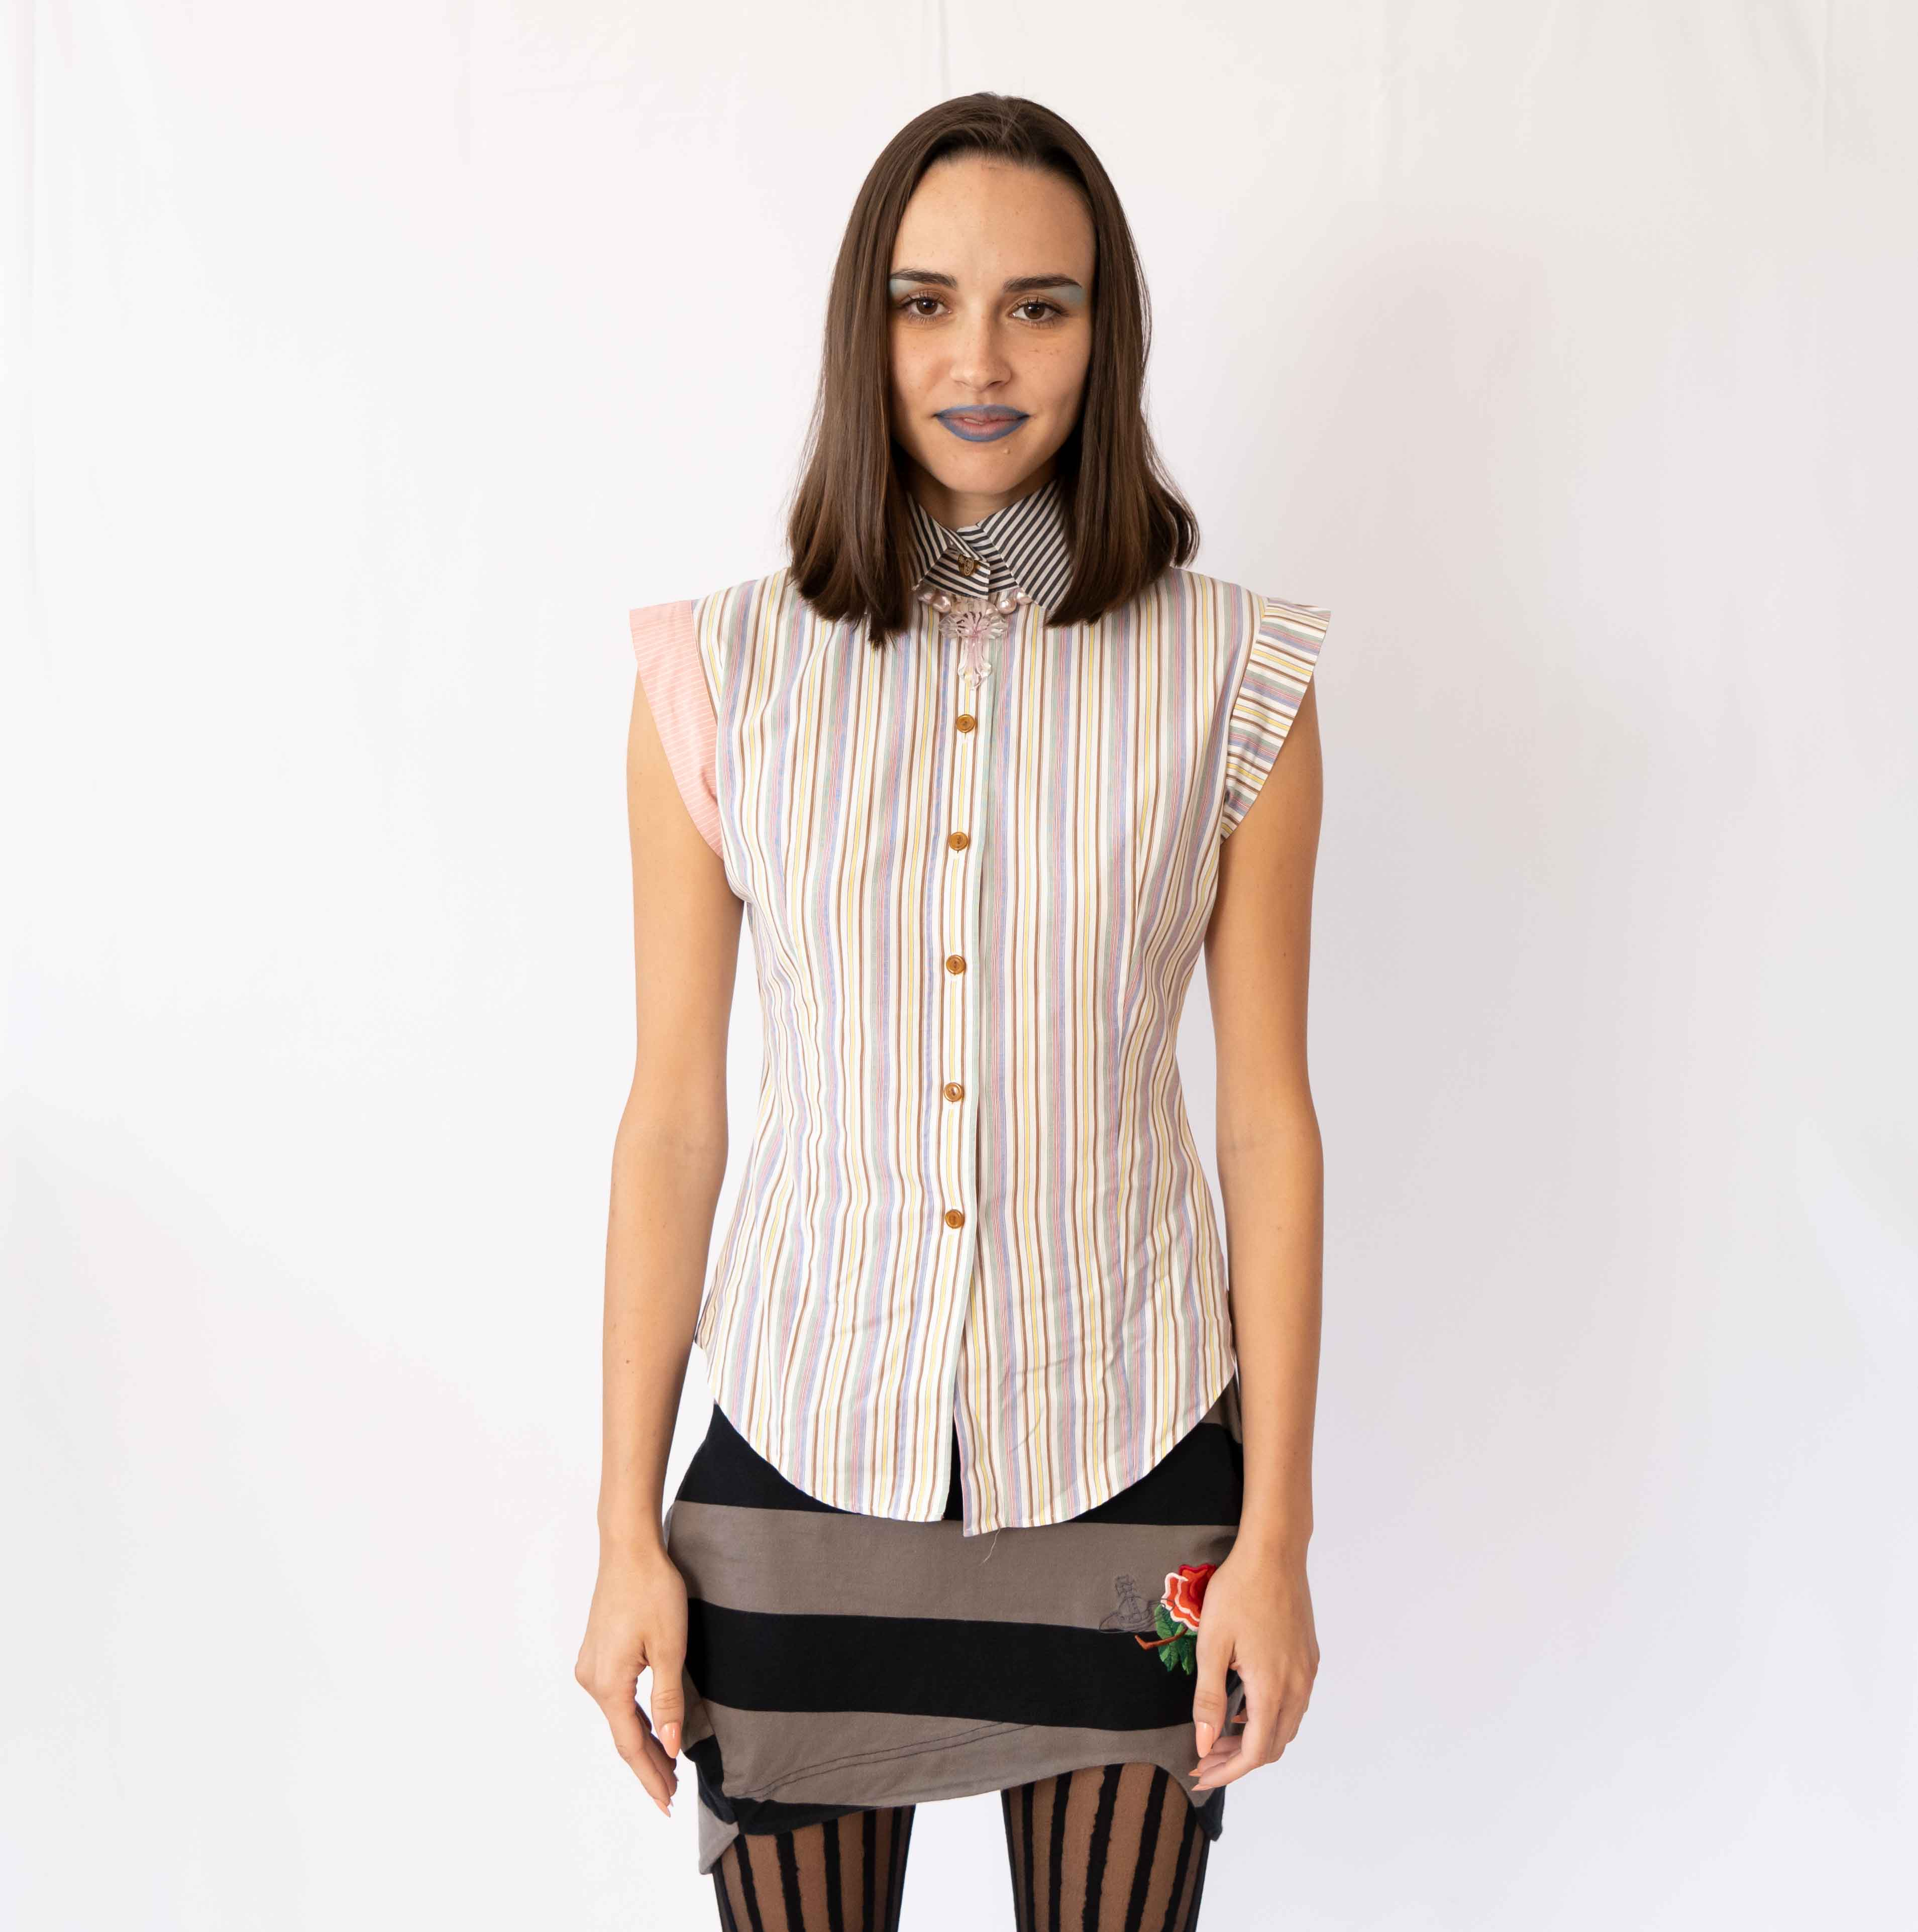 This not-so-simple Lolita blouse of perfect for work or a date. Pair it with a mini skirt or jeans for a casual look.